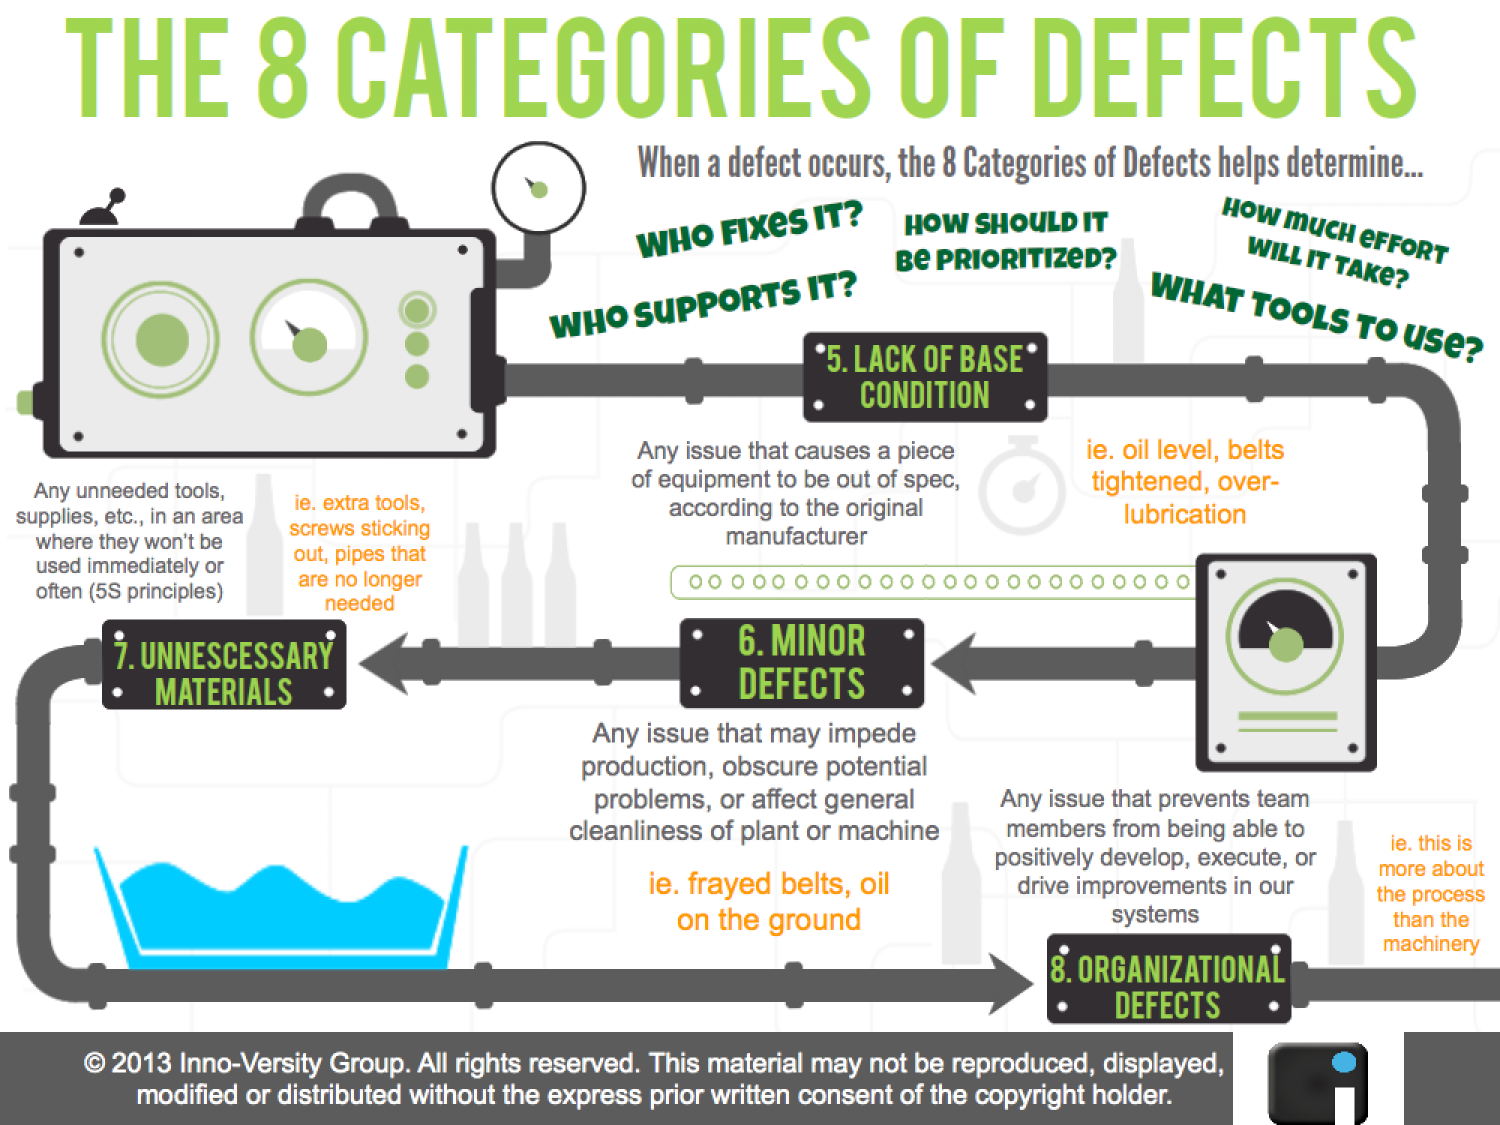 The 8 Categories of Defects pt.2 Infographic